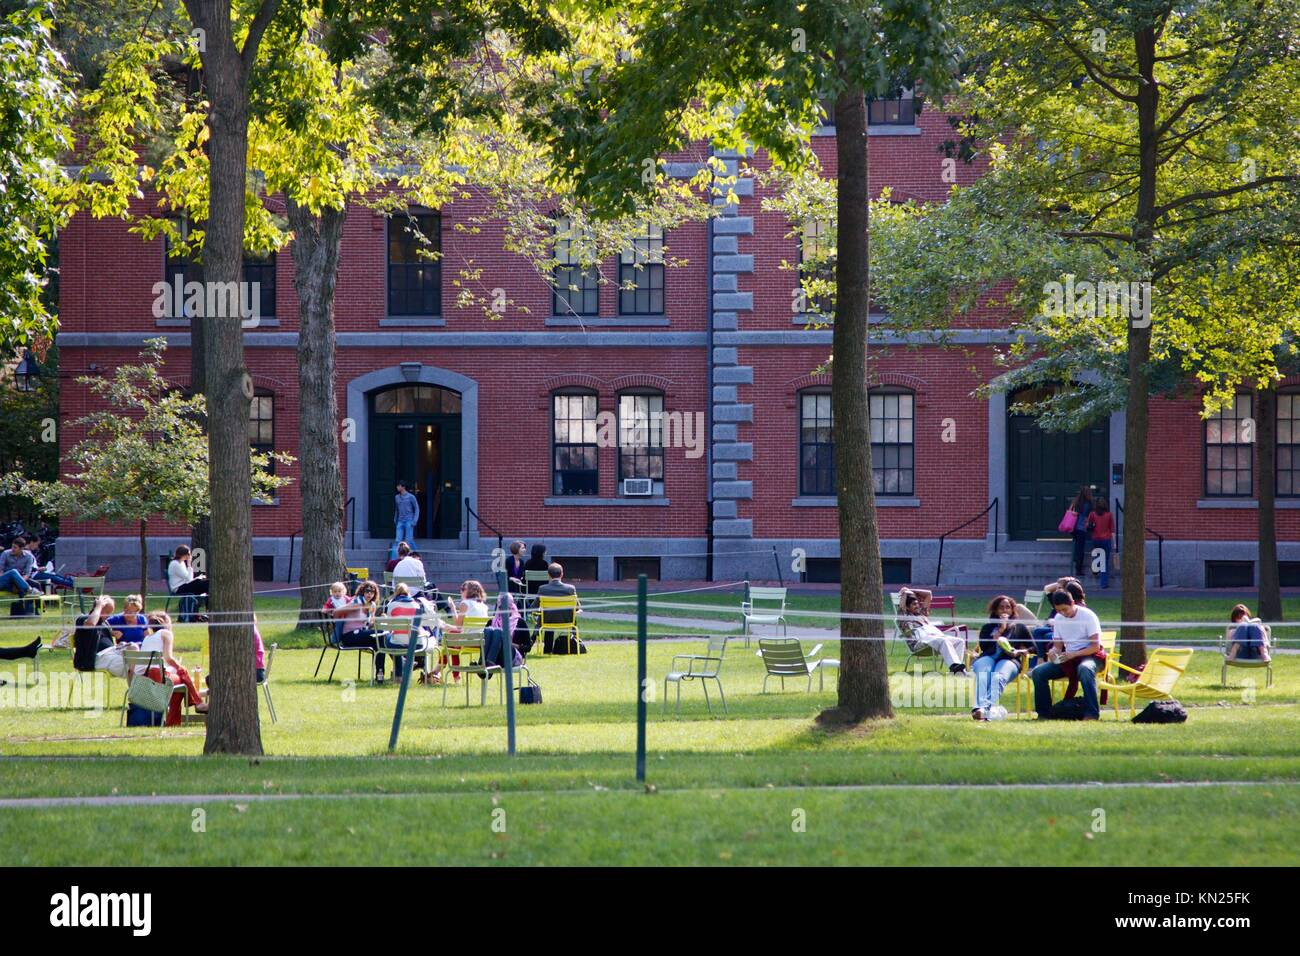 Cambridge, MA, USA - September 27, 2012: Students and tourists rest in lawn chairs in Harvard Yard, the old heart Stock Photo